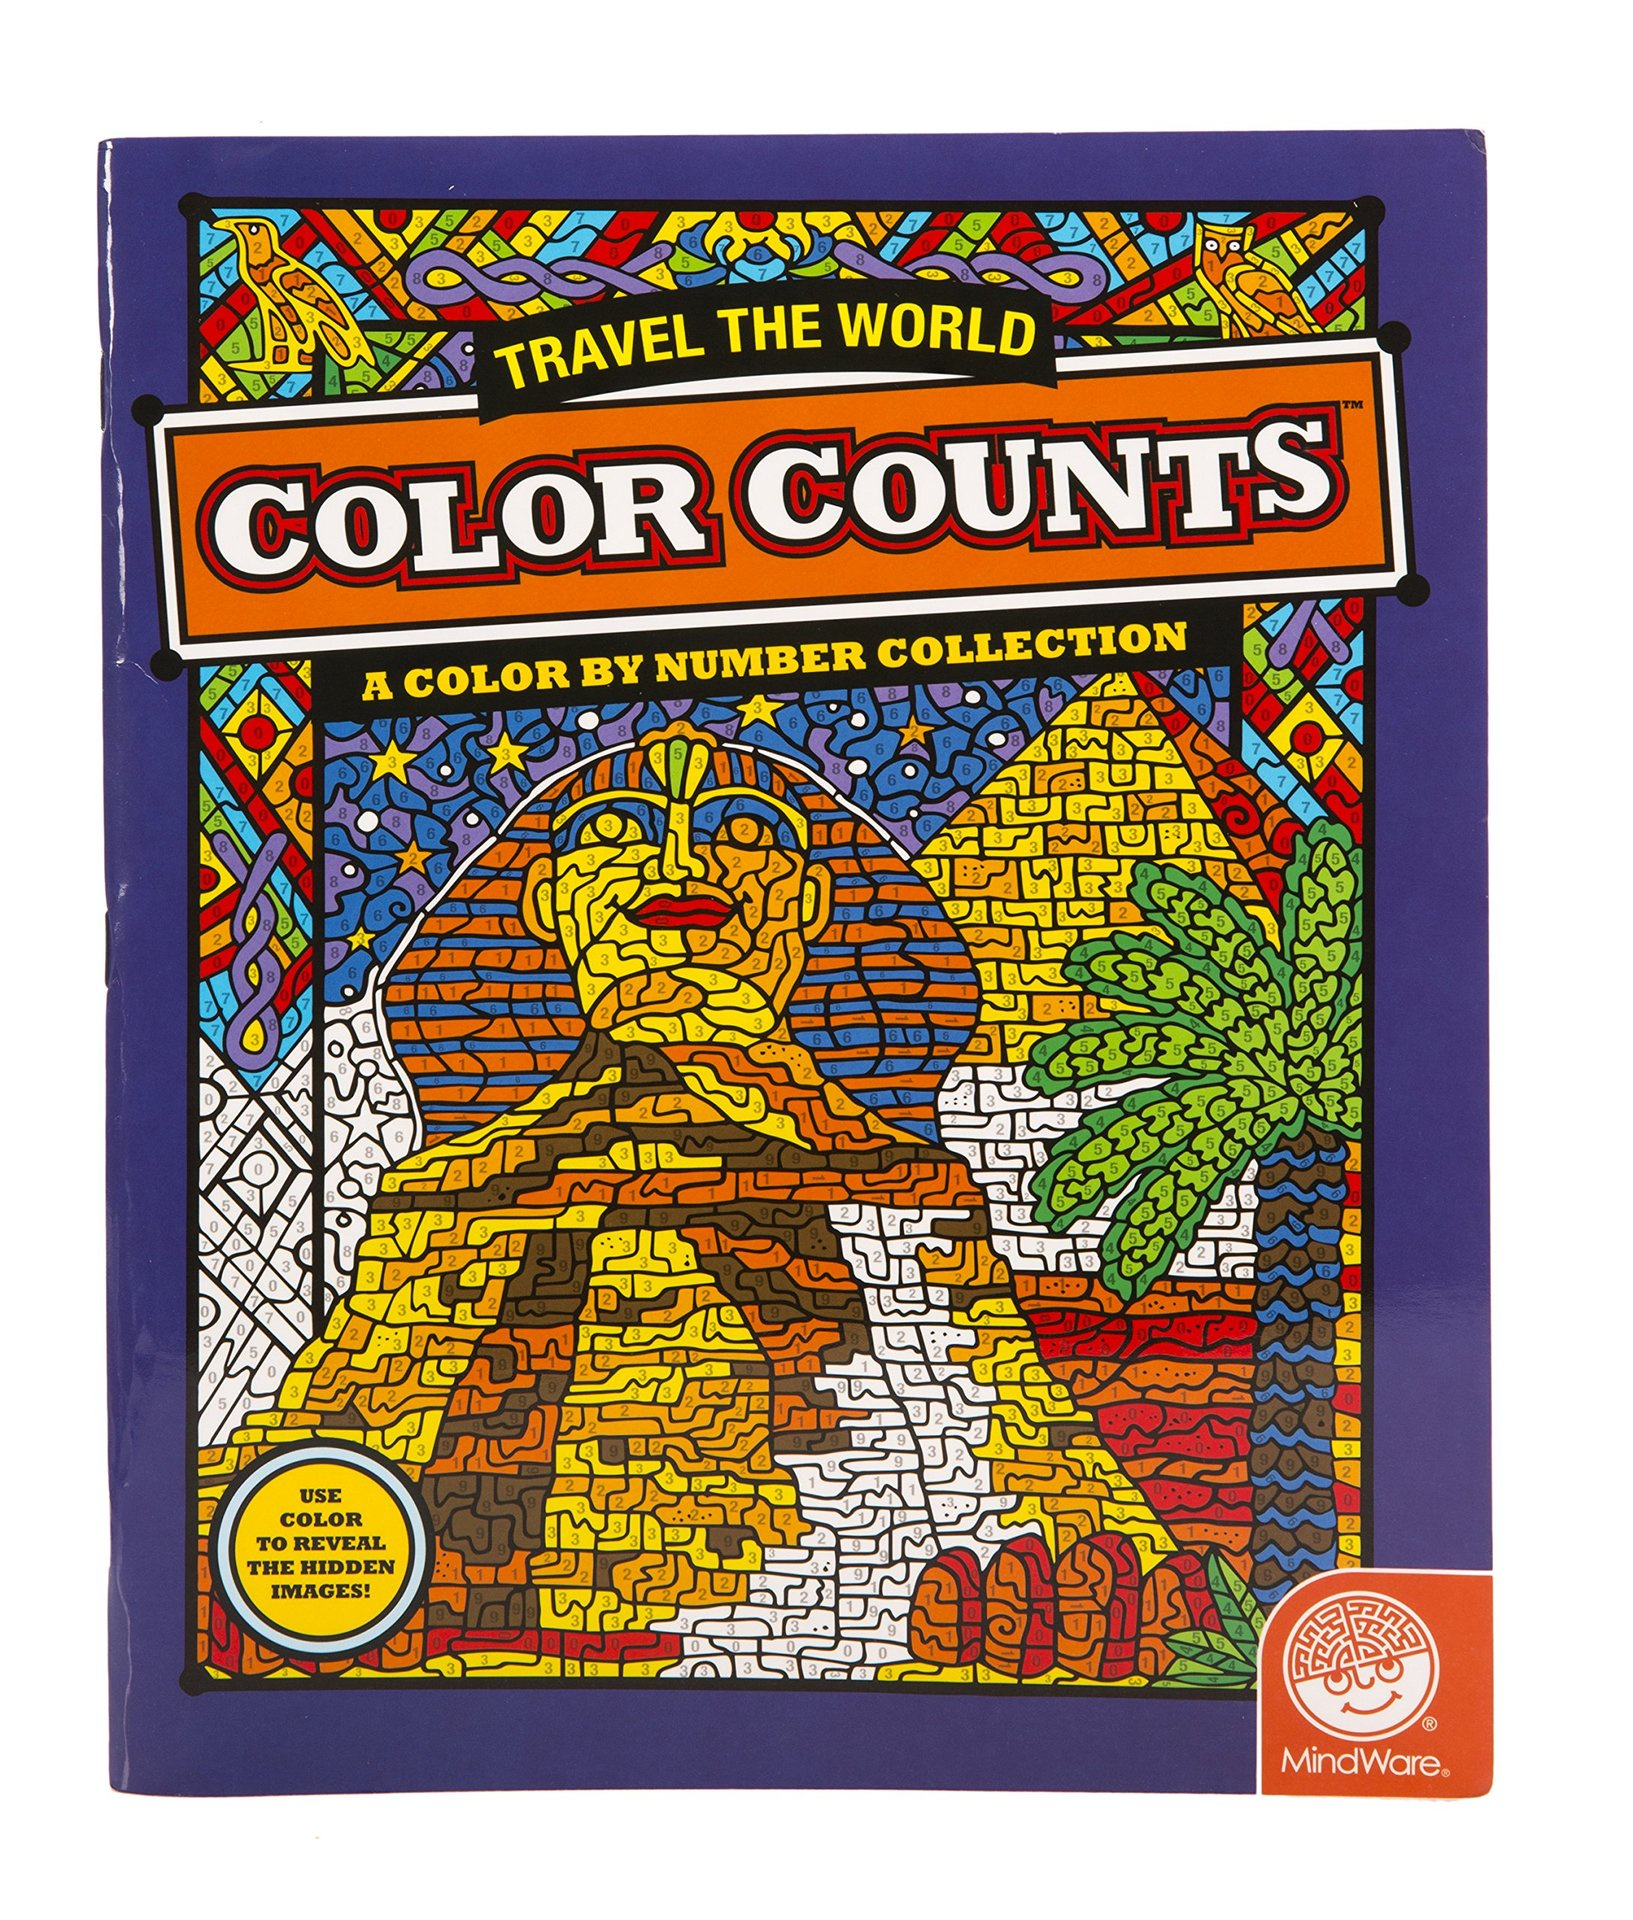 X MW 62005 COLOR COUNTS TRAVEL THE WORLD